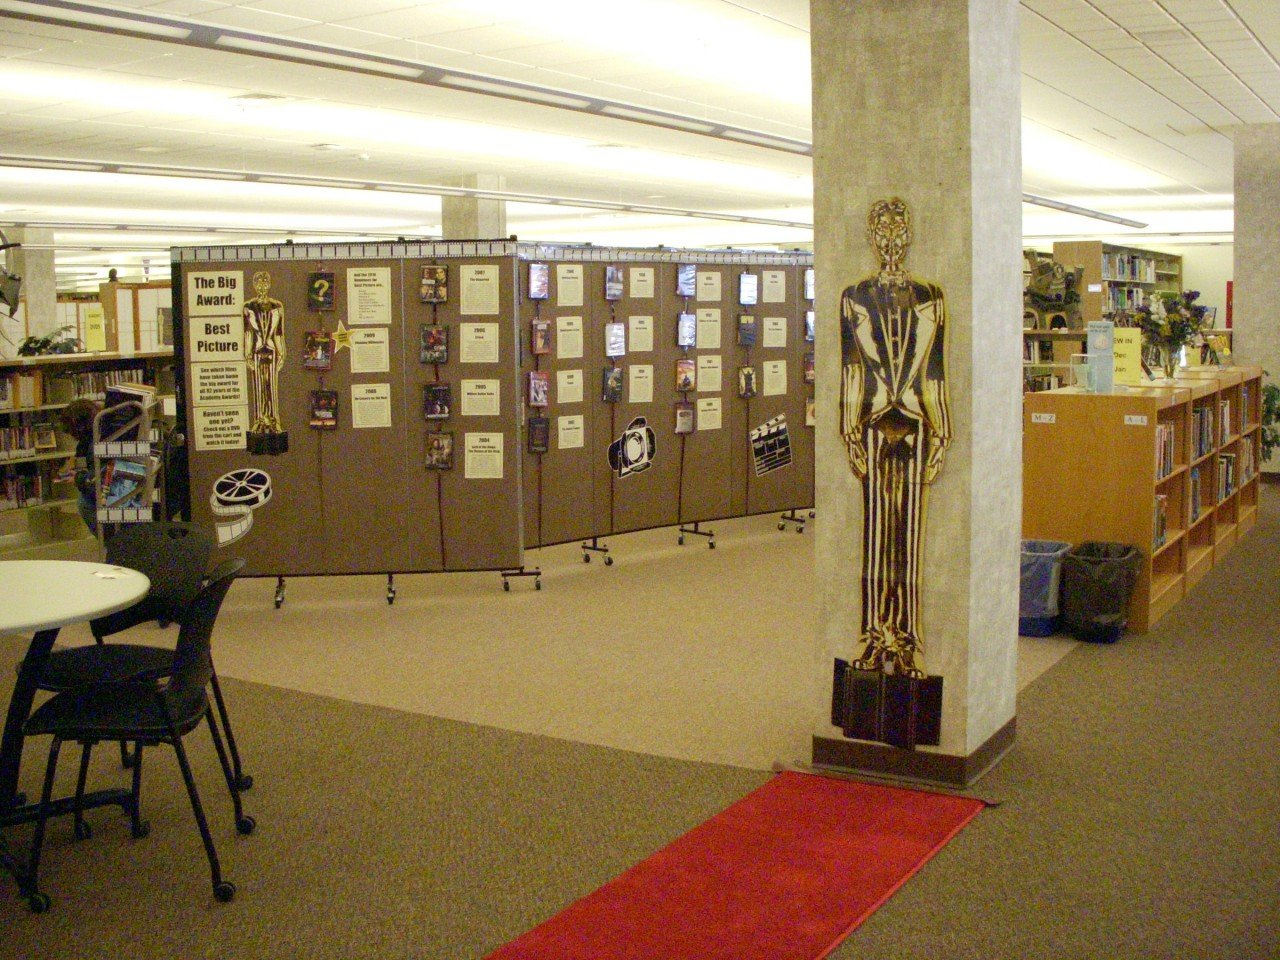 School library display Oscars trivia